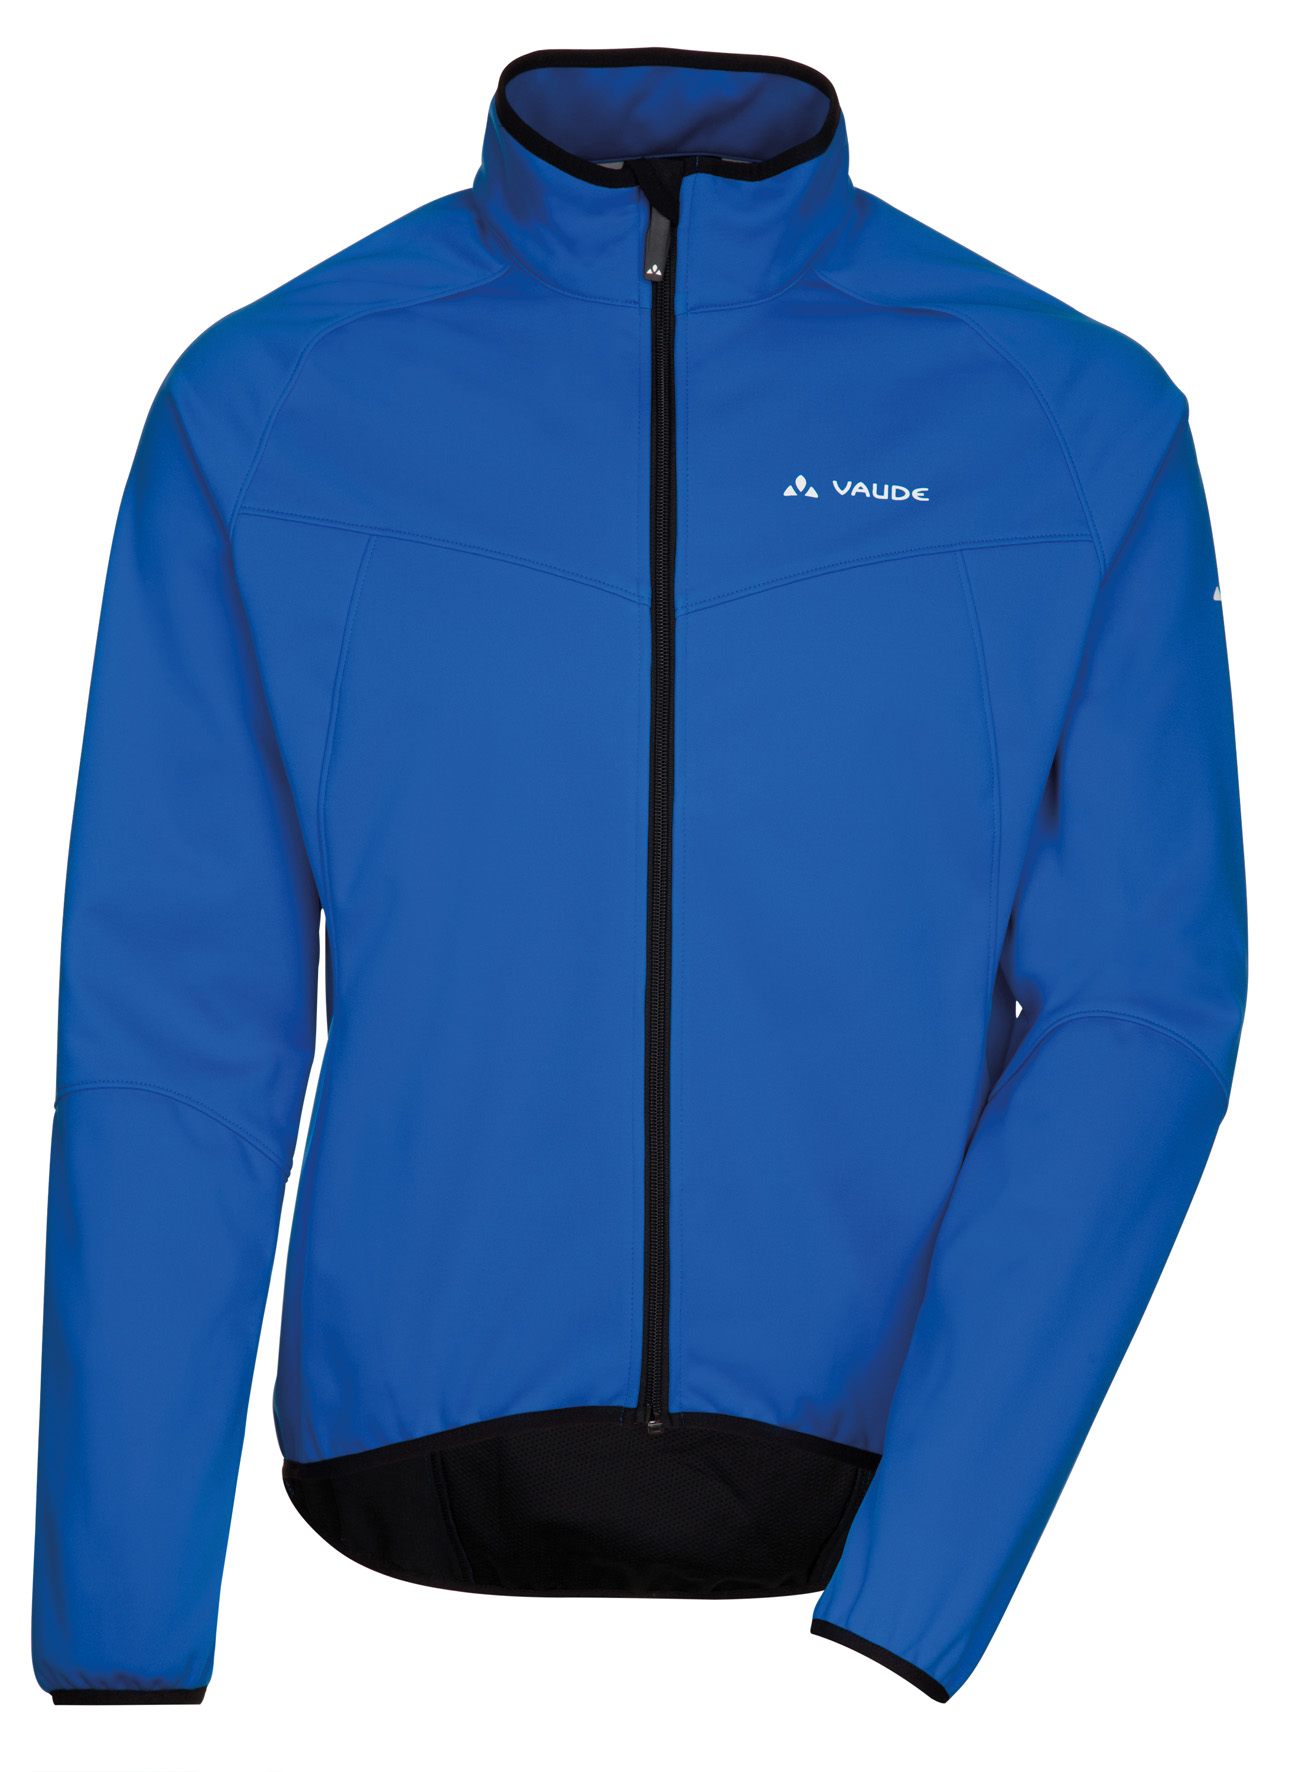 VAUDE Men´s Matera Softshell Jacket II hydro blue Größe S - schneider-sports